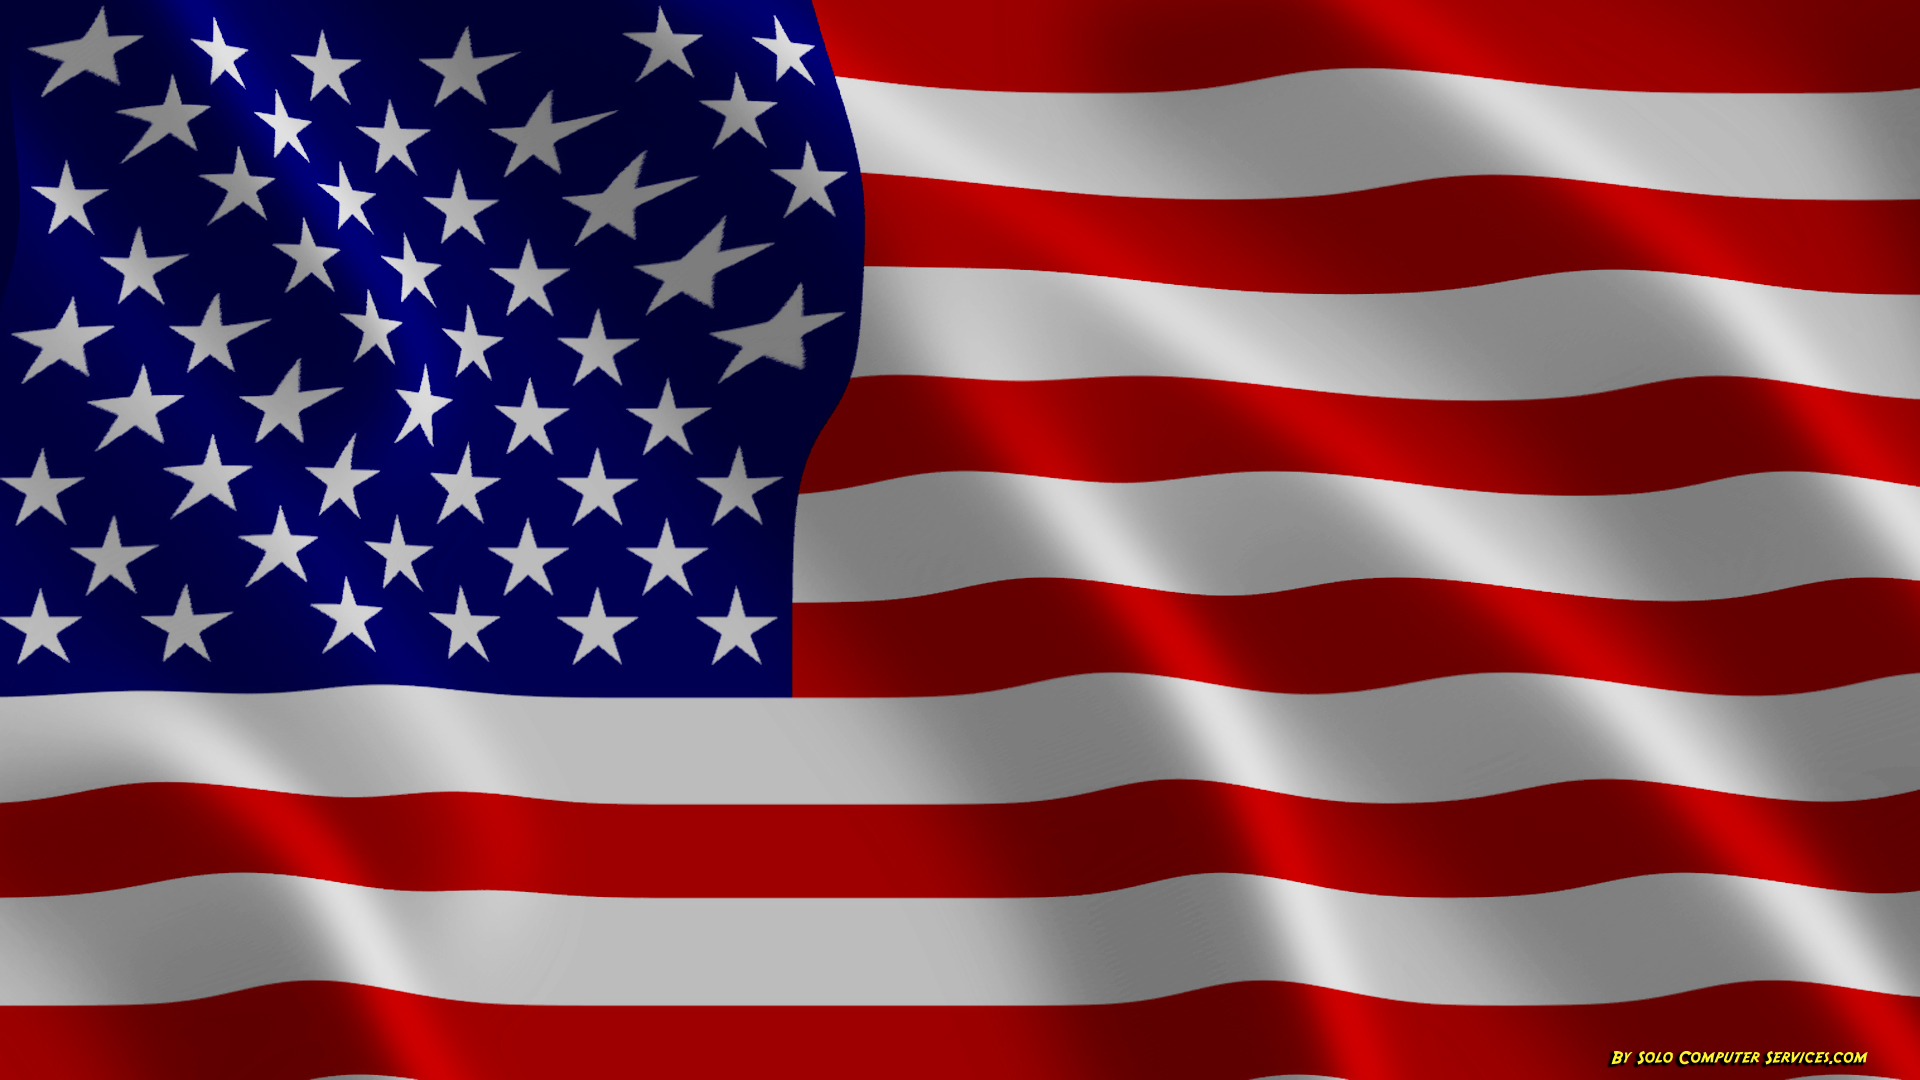 Free hd usa wallpapers the beauty of diversity in usa Hd usa